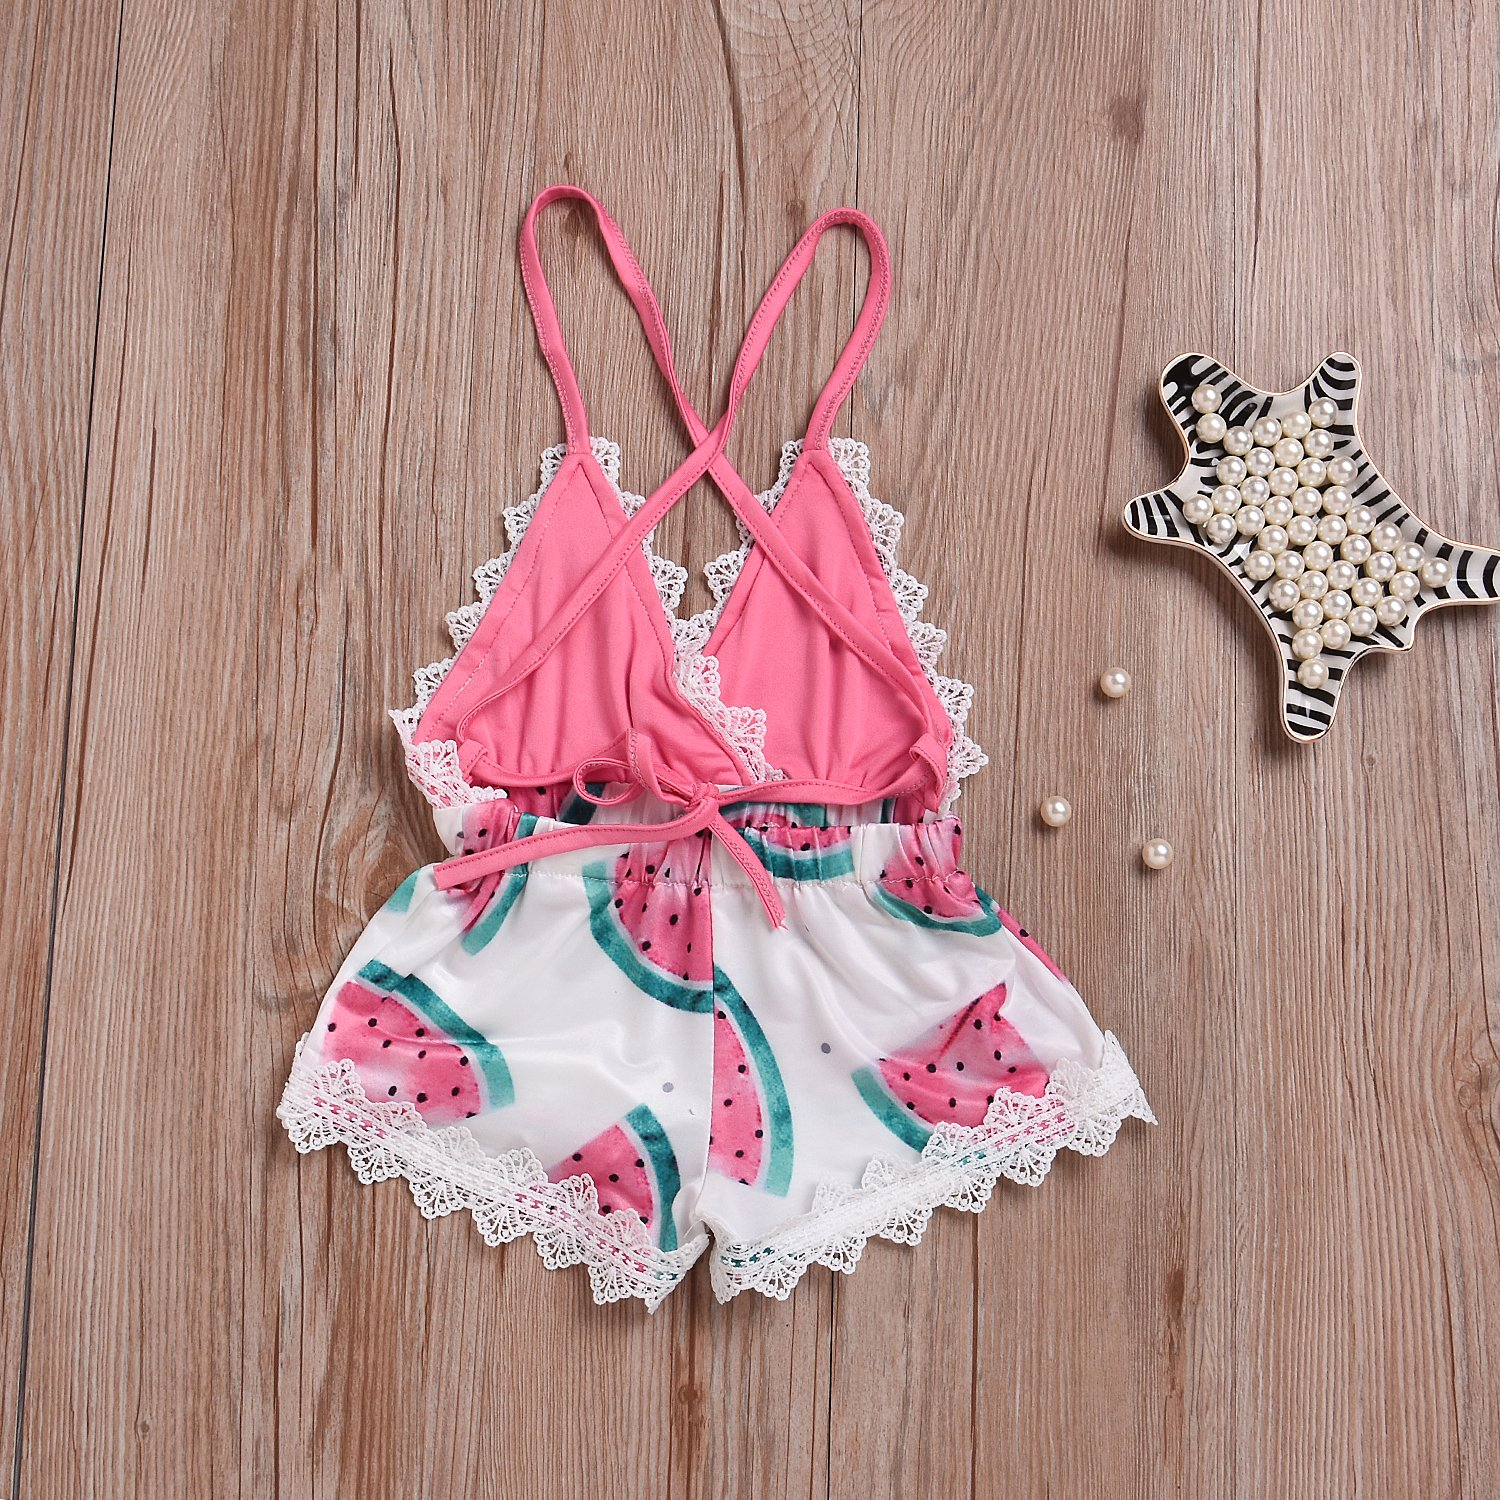 cd9d41c1d38 Amazon.com  Summer Toddler Baby Girl Clothes Cute Watermelon Print Lace  Trim Backless Romper Shorts Jumpsuit  Clothing